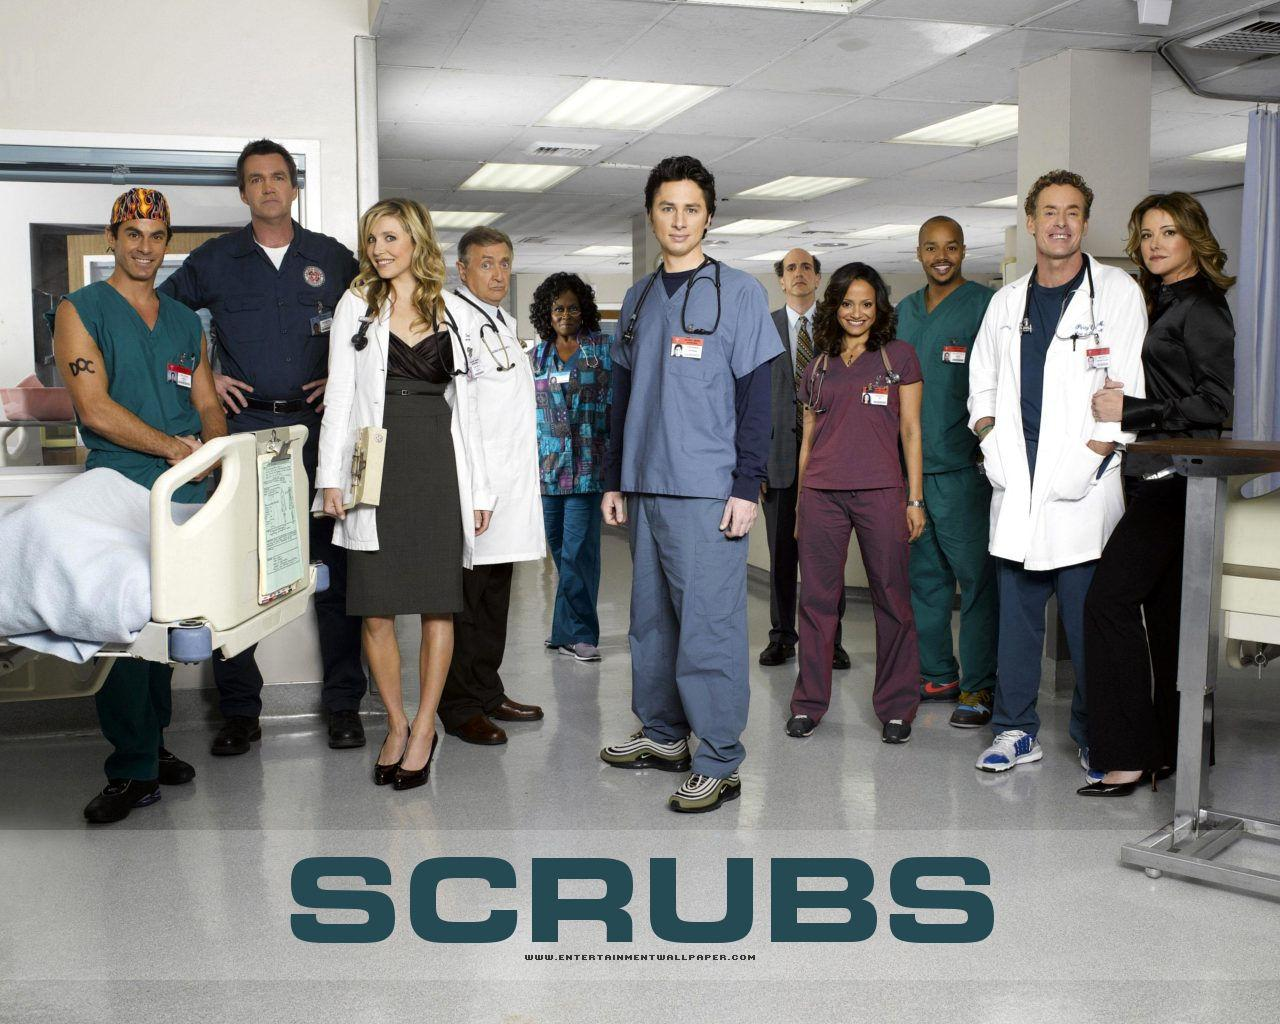 Scrubs_Serie_de_TV-102518839-large